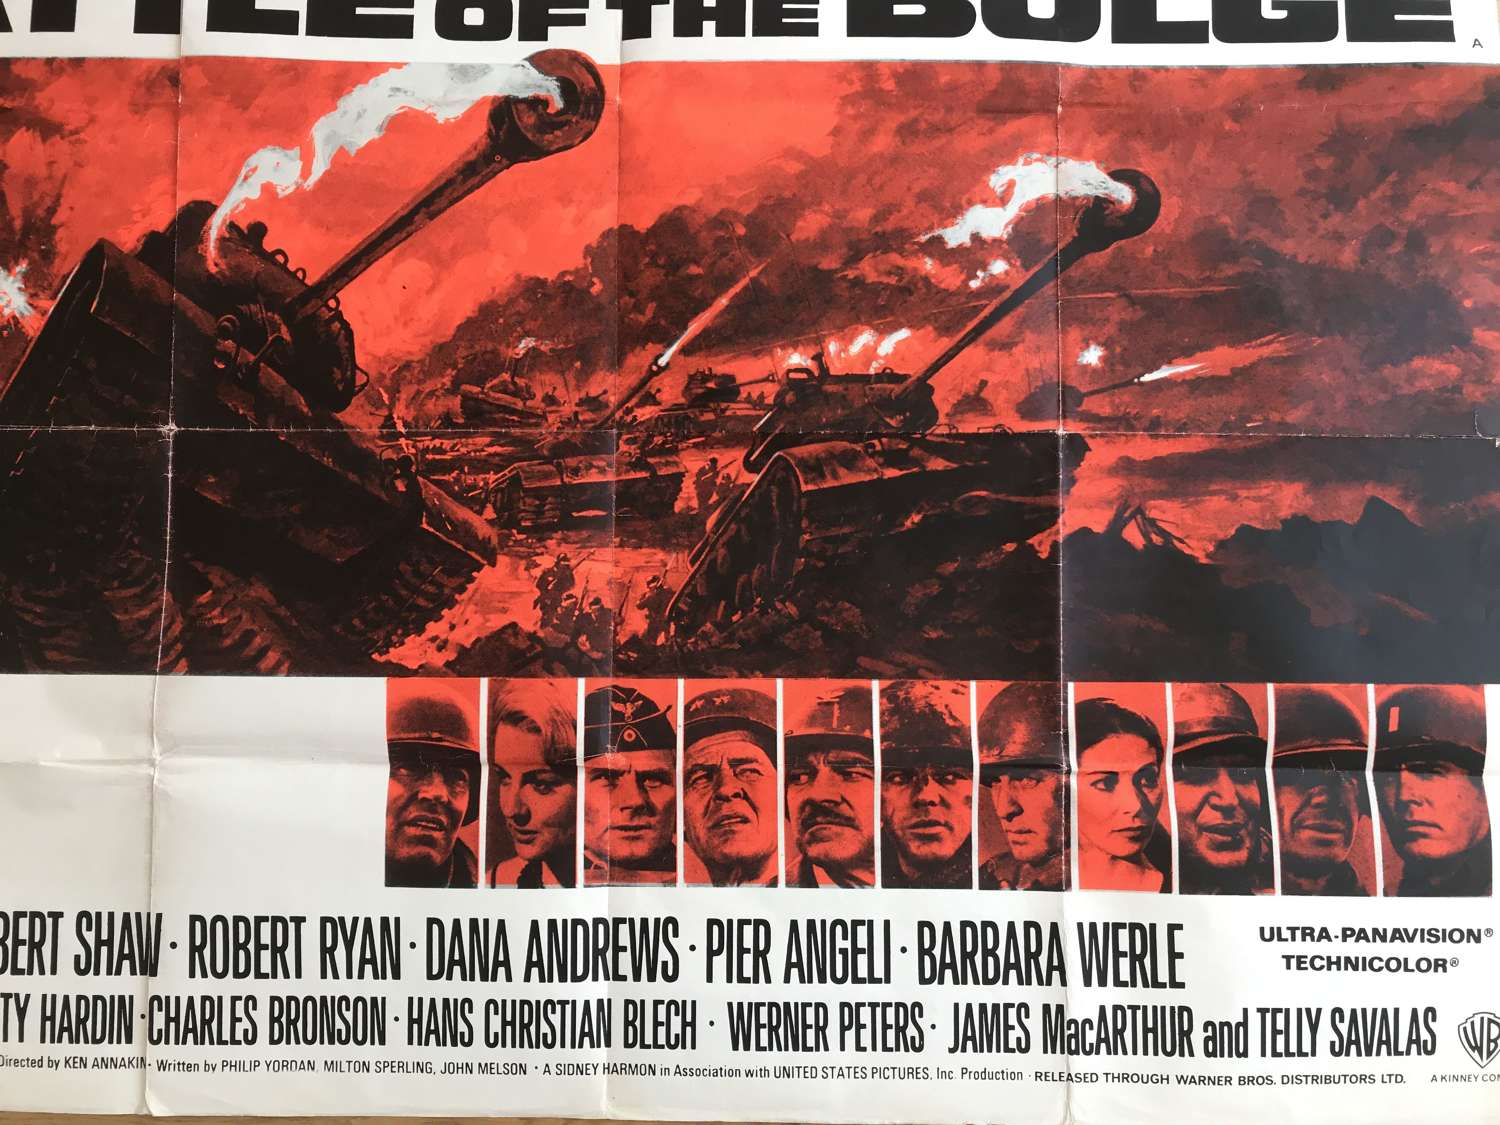 Battle of the bulge film poster dating from 1965